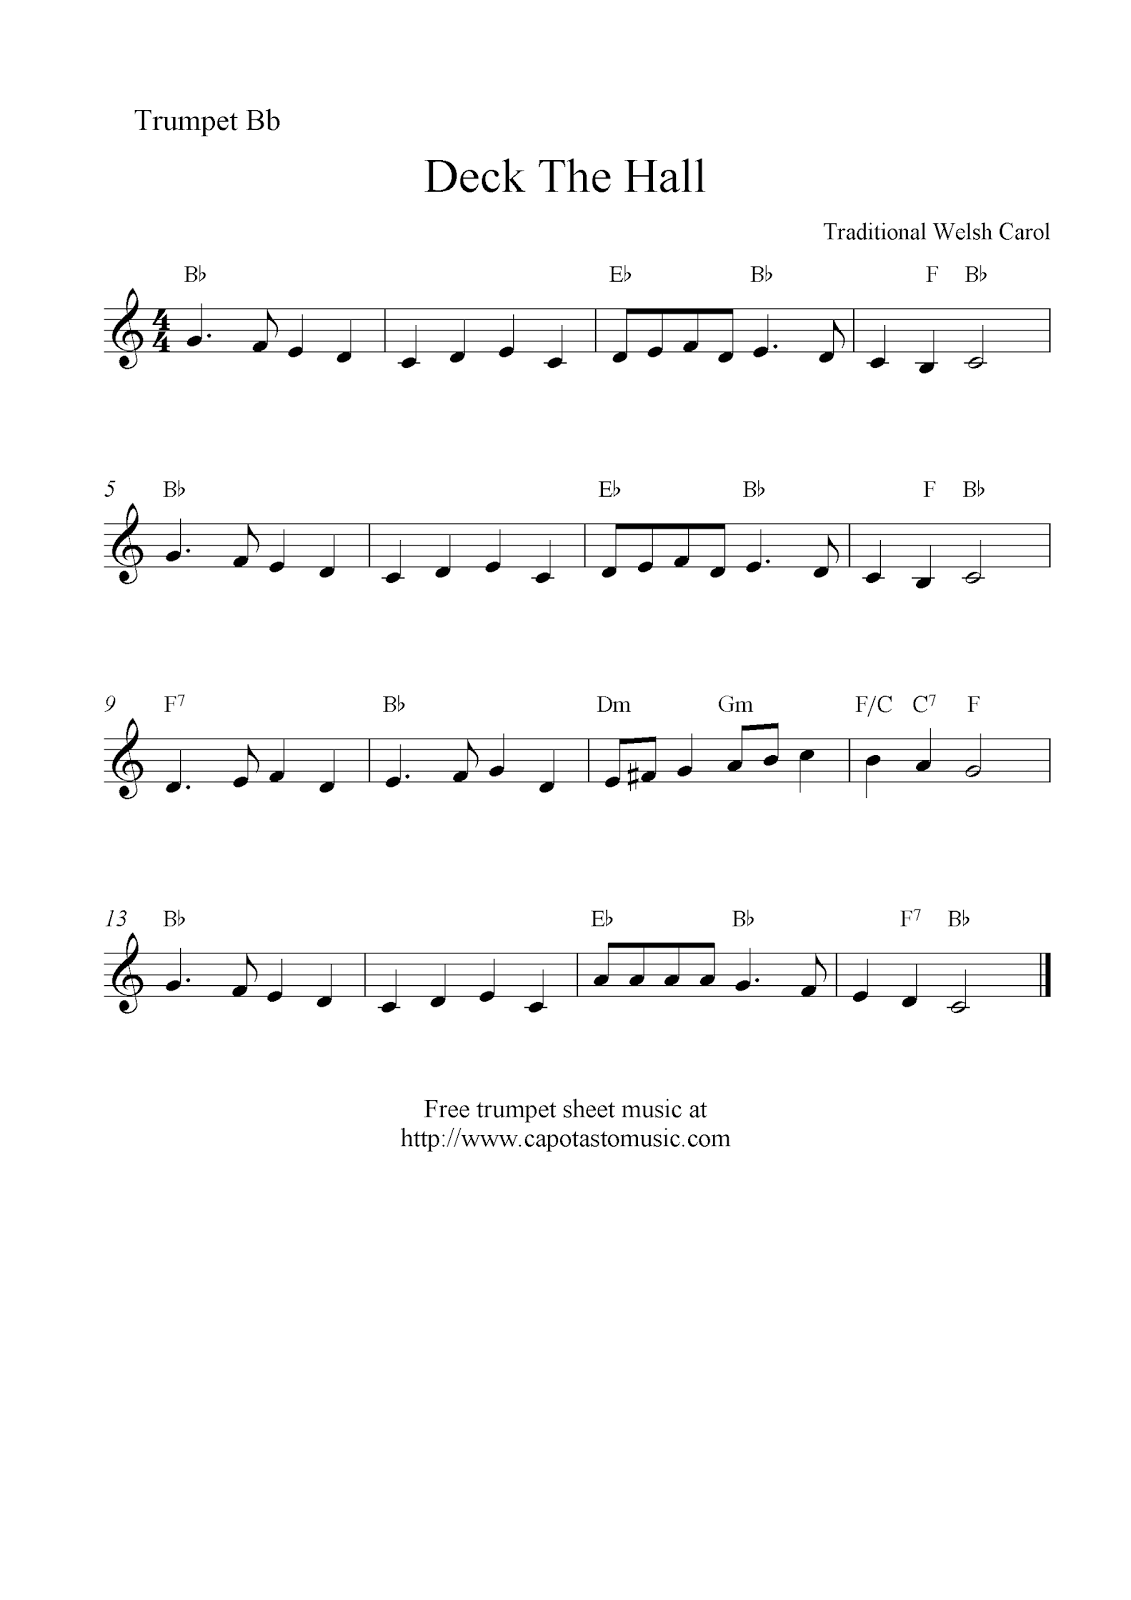 Deck The Halls, free Christmas trumpet sheet music